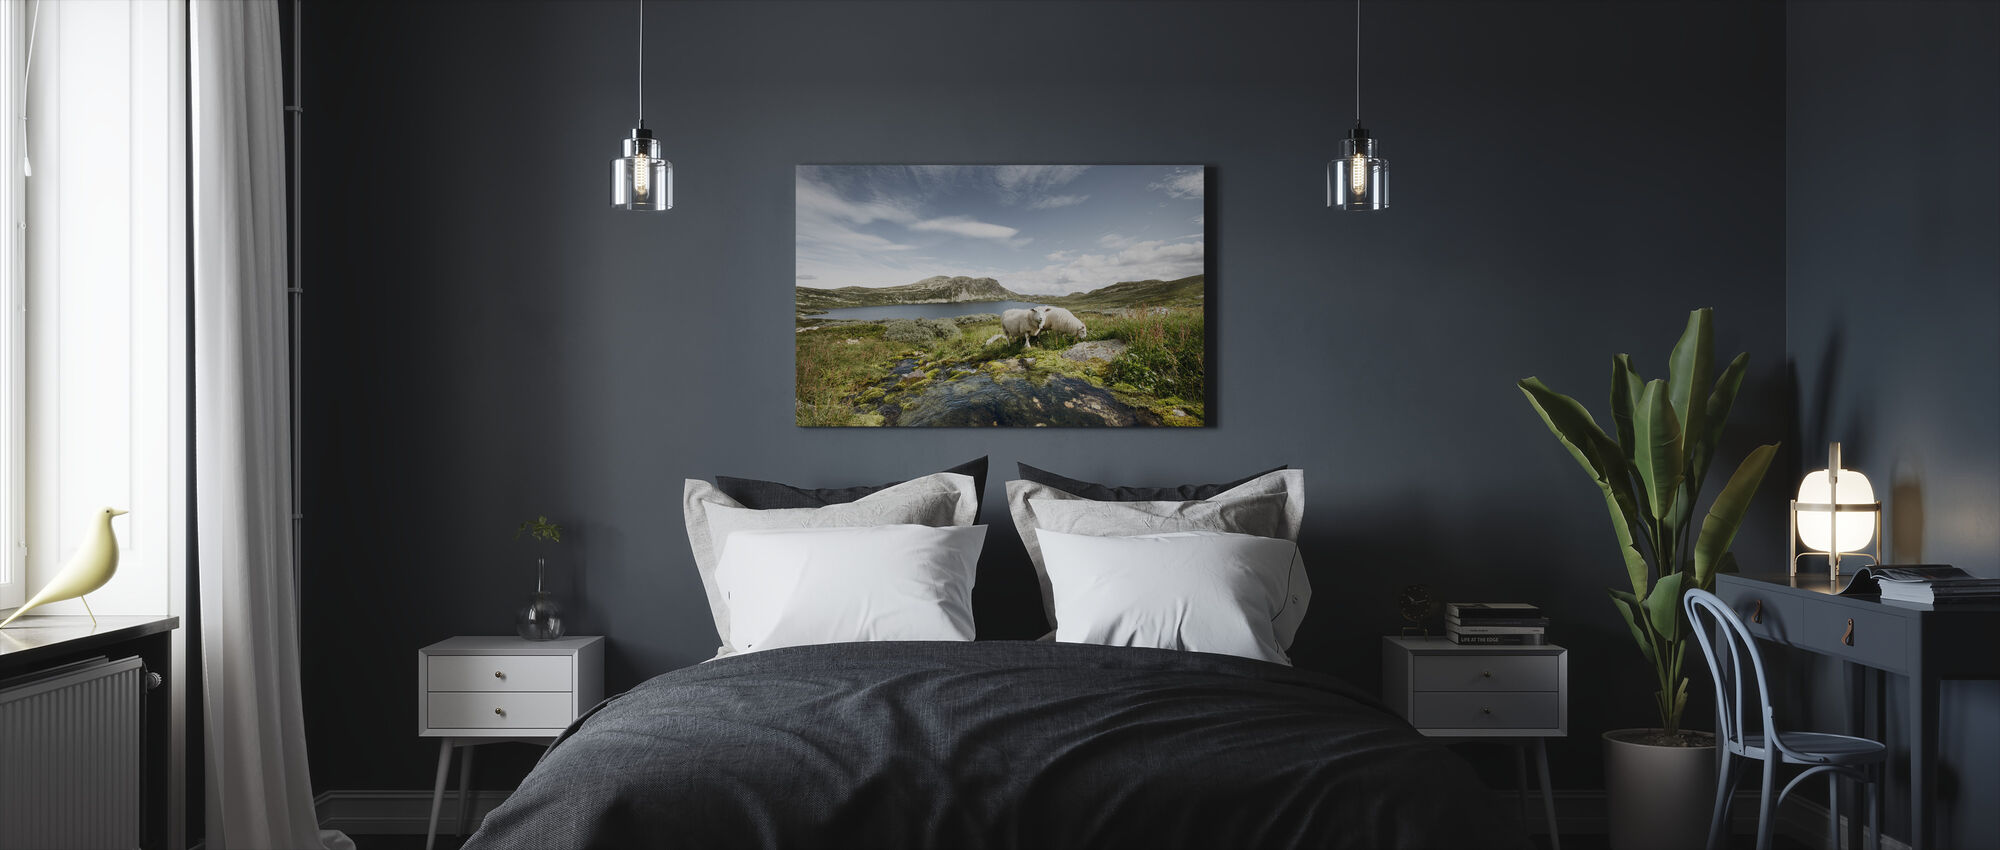 Sheep by Lake in Norway - Canvas print - Bedroom